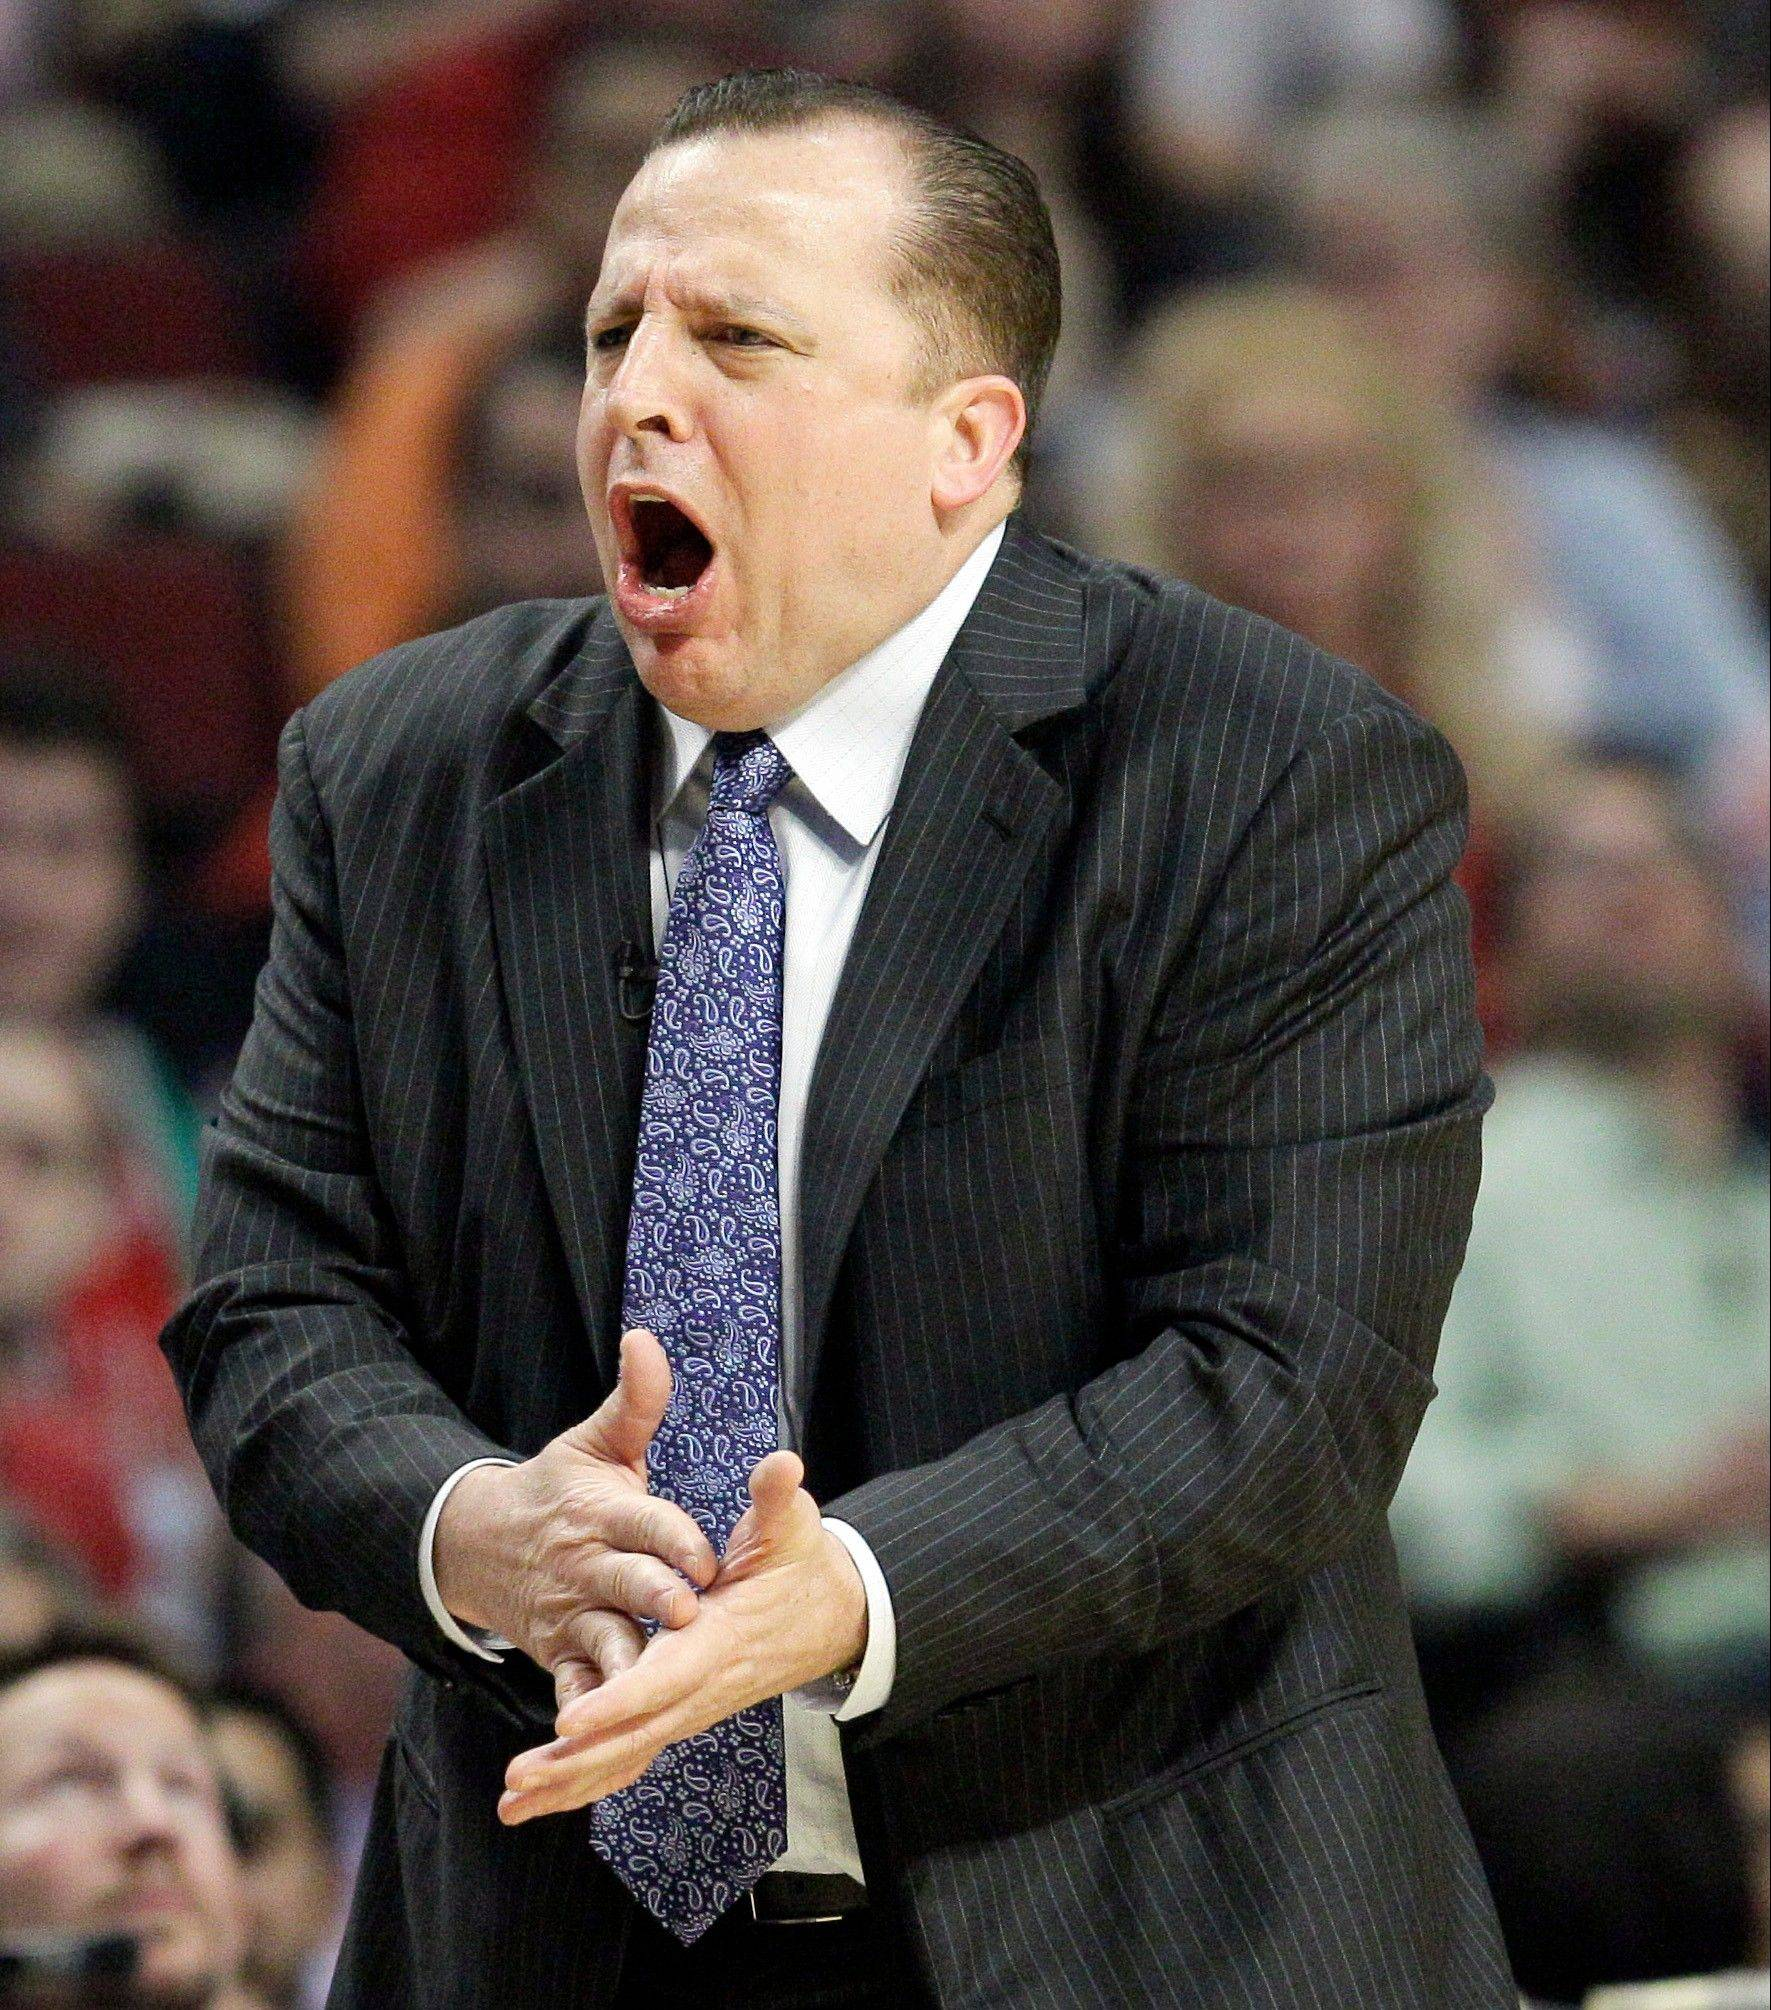 Bulls coach Tom Thibodeau will reach 100 career wins faster than any NBA coach in history with a victory tonight in Orlando.